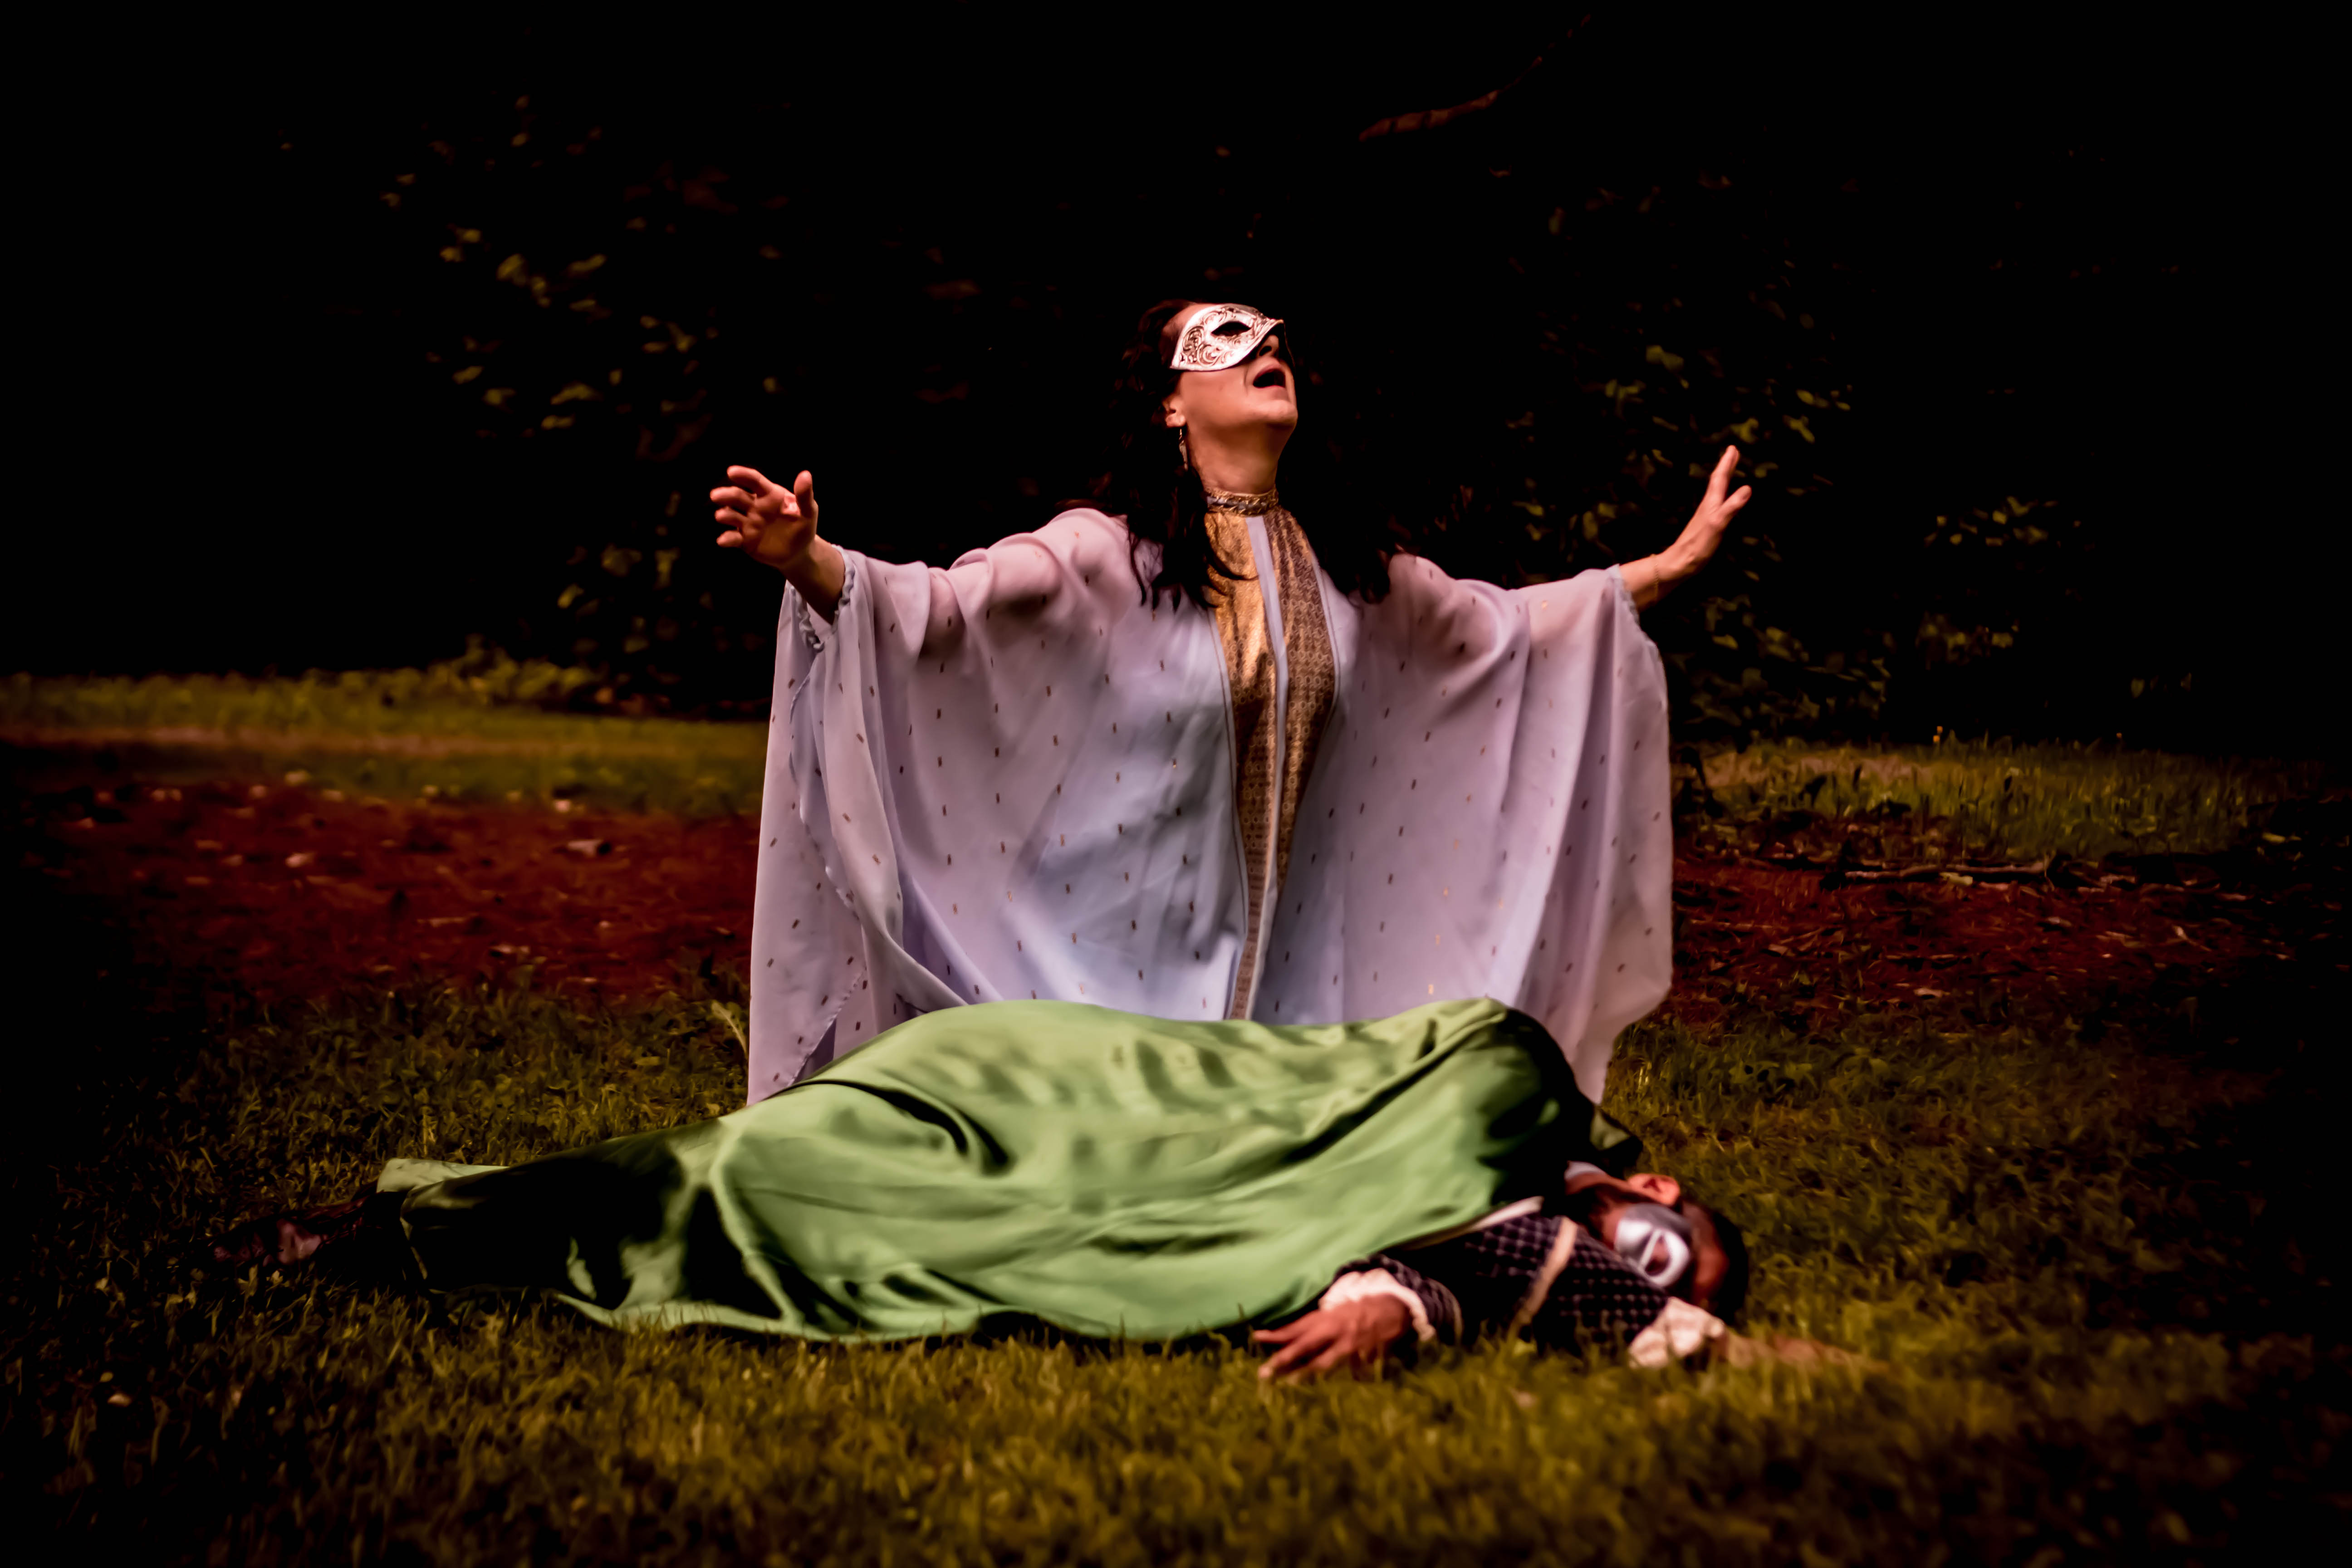 """an analysis of the ophelias death in hamlet a play by william shakespeare If william shakespeare's hamlet is """"the most famous play in english  it is not a  pathology of falsehood or displacement of meaning, but of history itself"""" (5)   thus, ophelia's reaction to her father's death is not due to a biological flaw, but  set."""